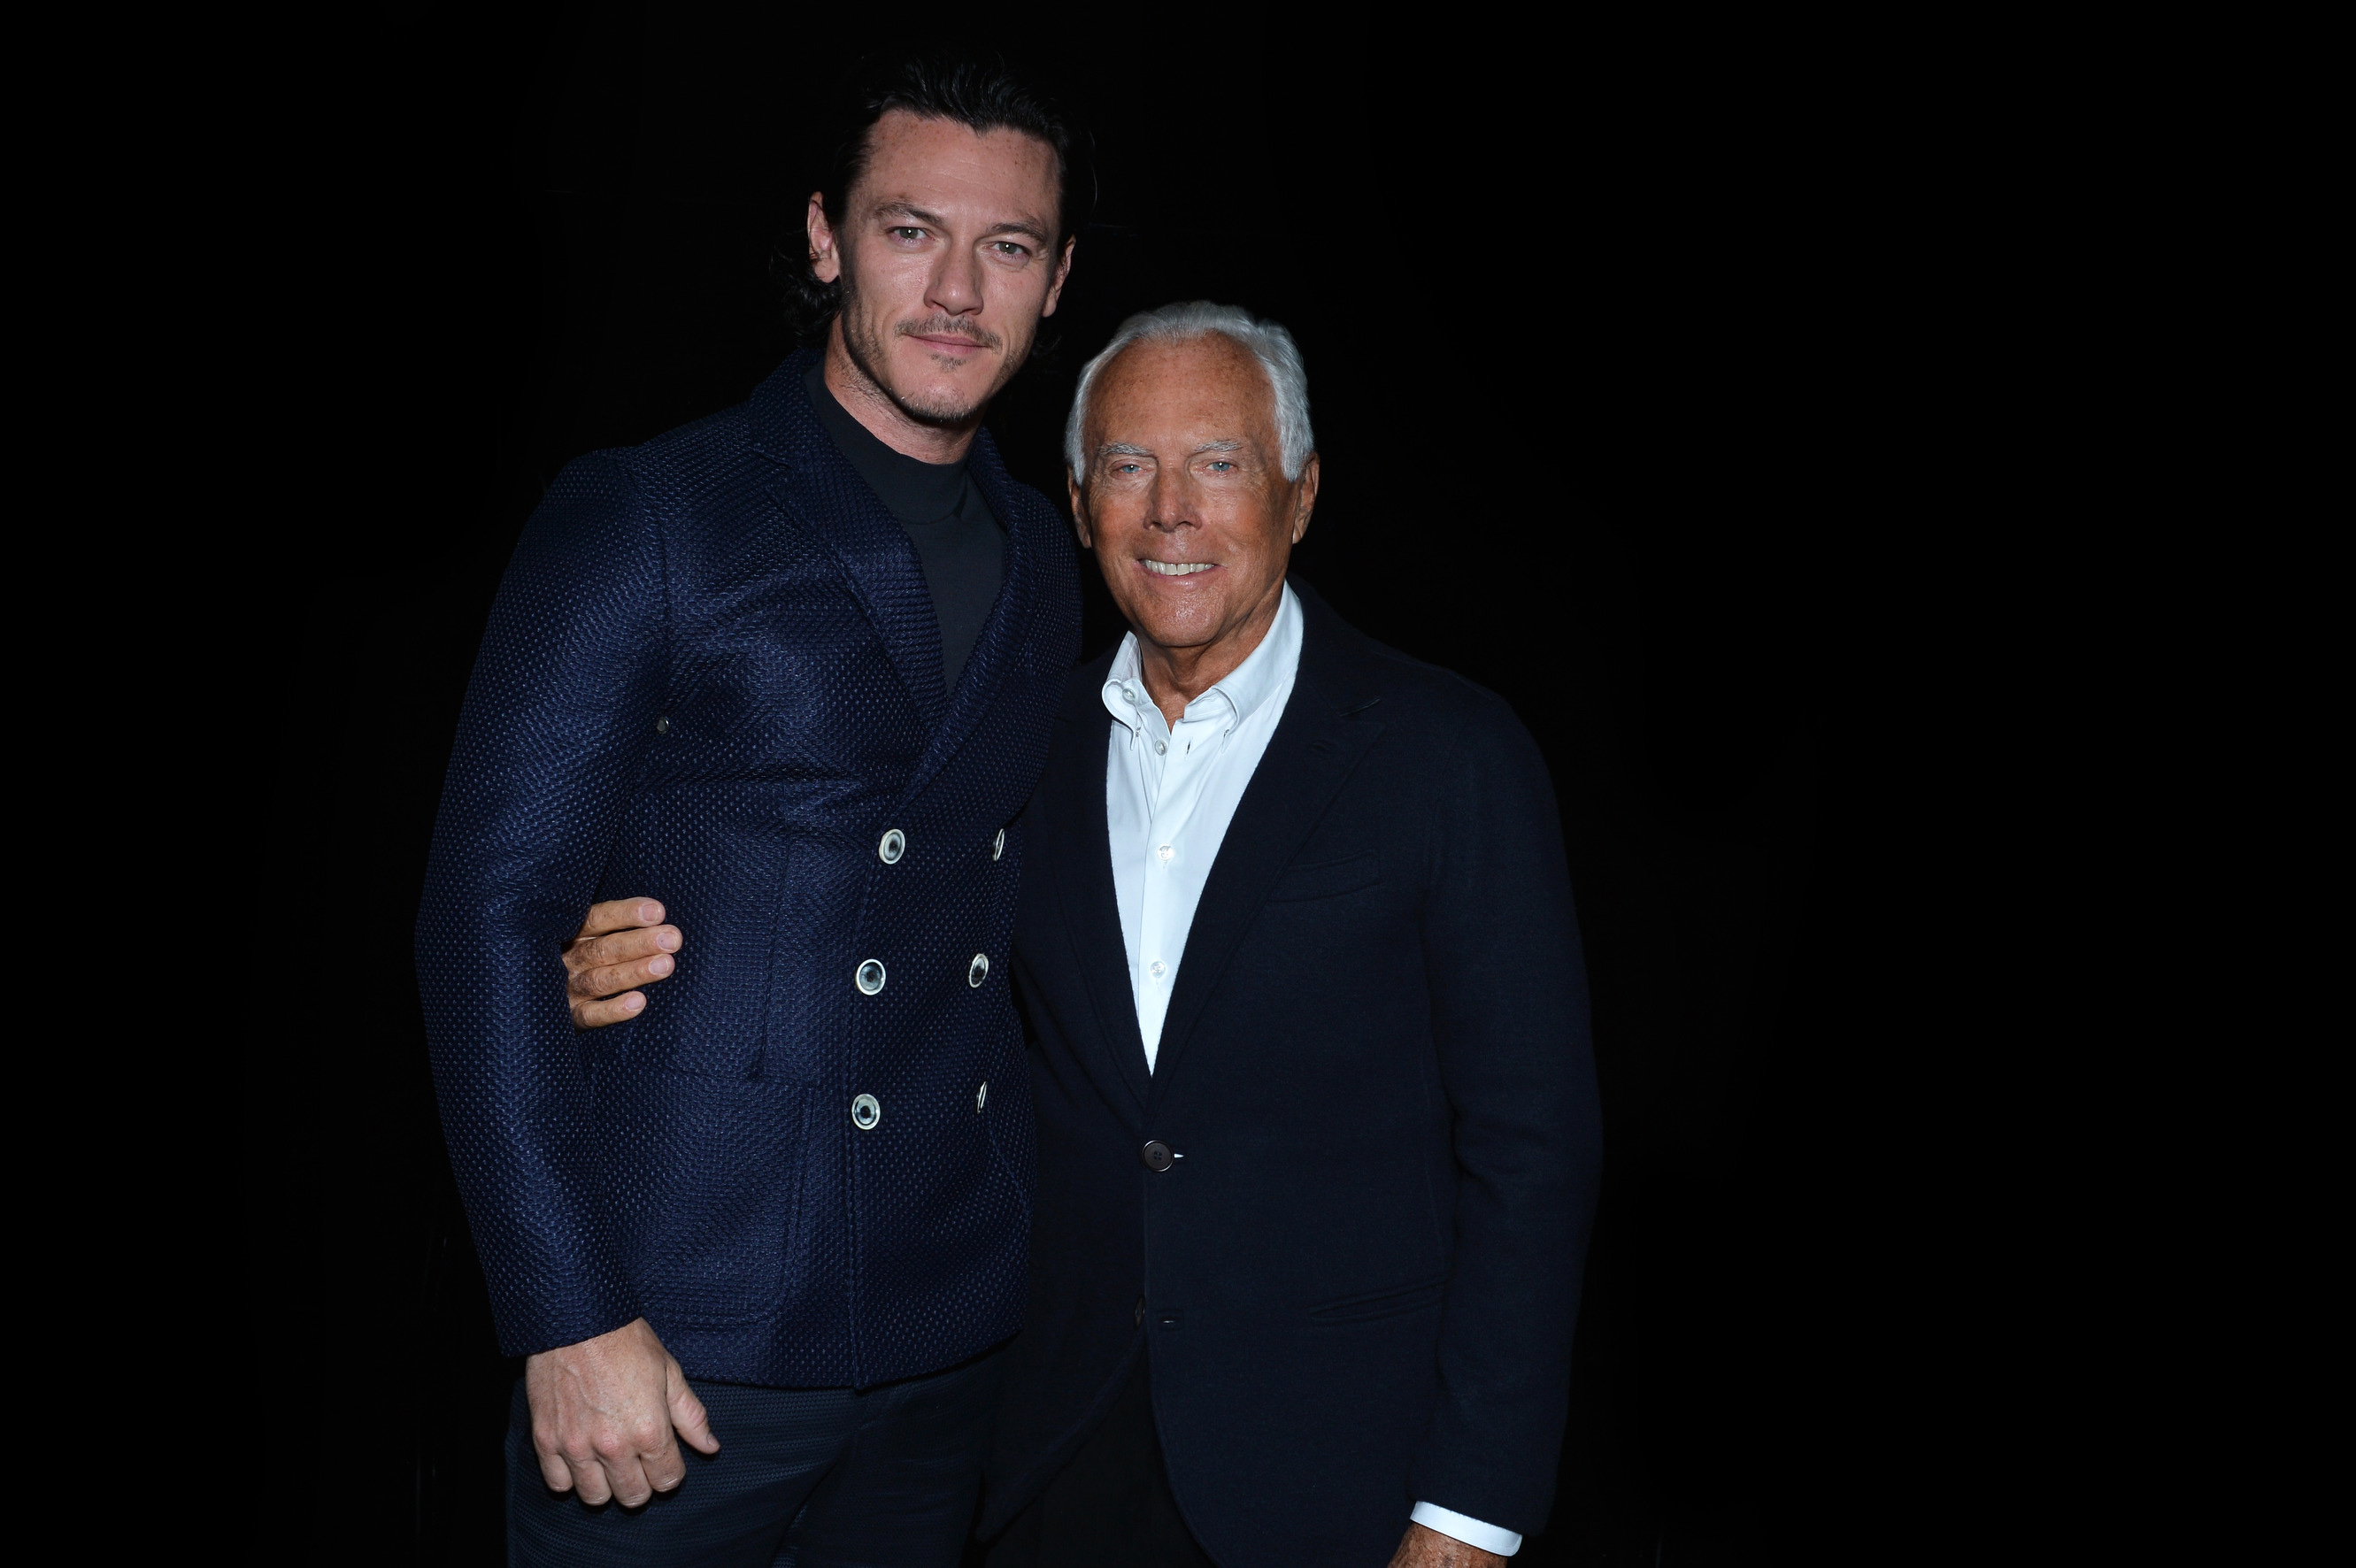 giorgio-armani-and-luke-evans